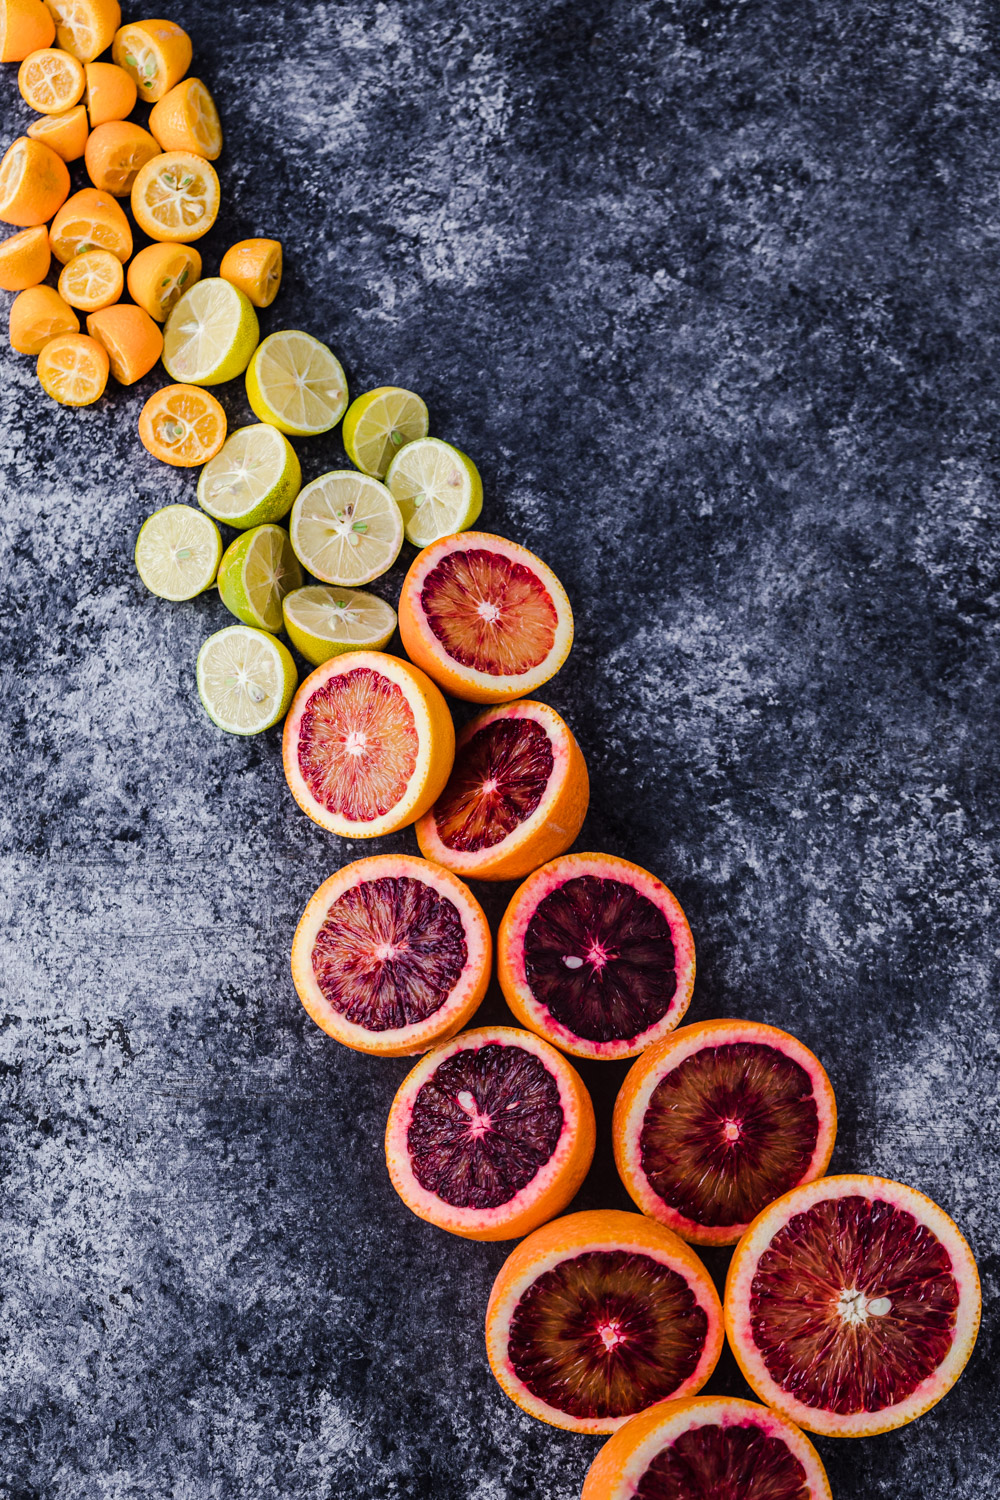 Kumquats, limequats, and blood oranges but in half